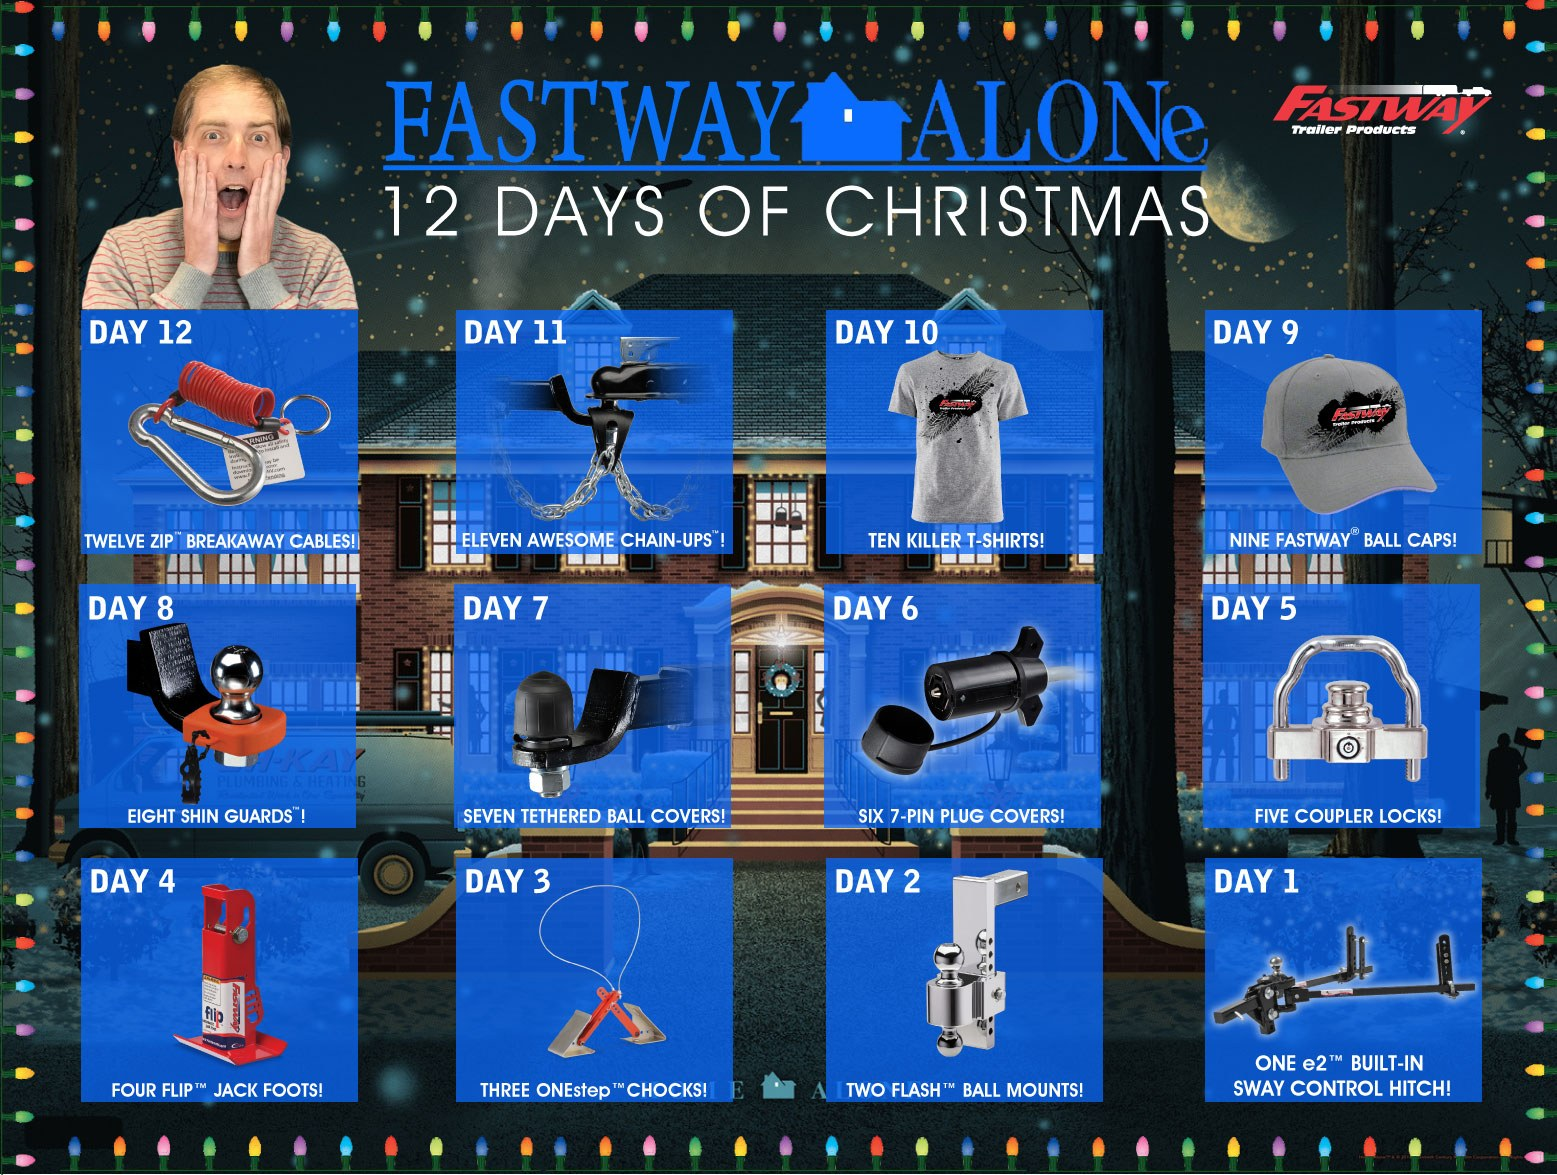 FW_12days-infographic-2017_Home-Alone_v001-_002.jpg#asset:318